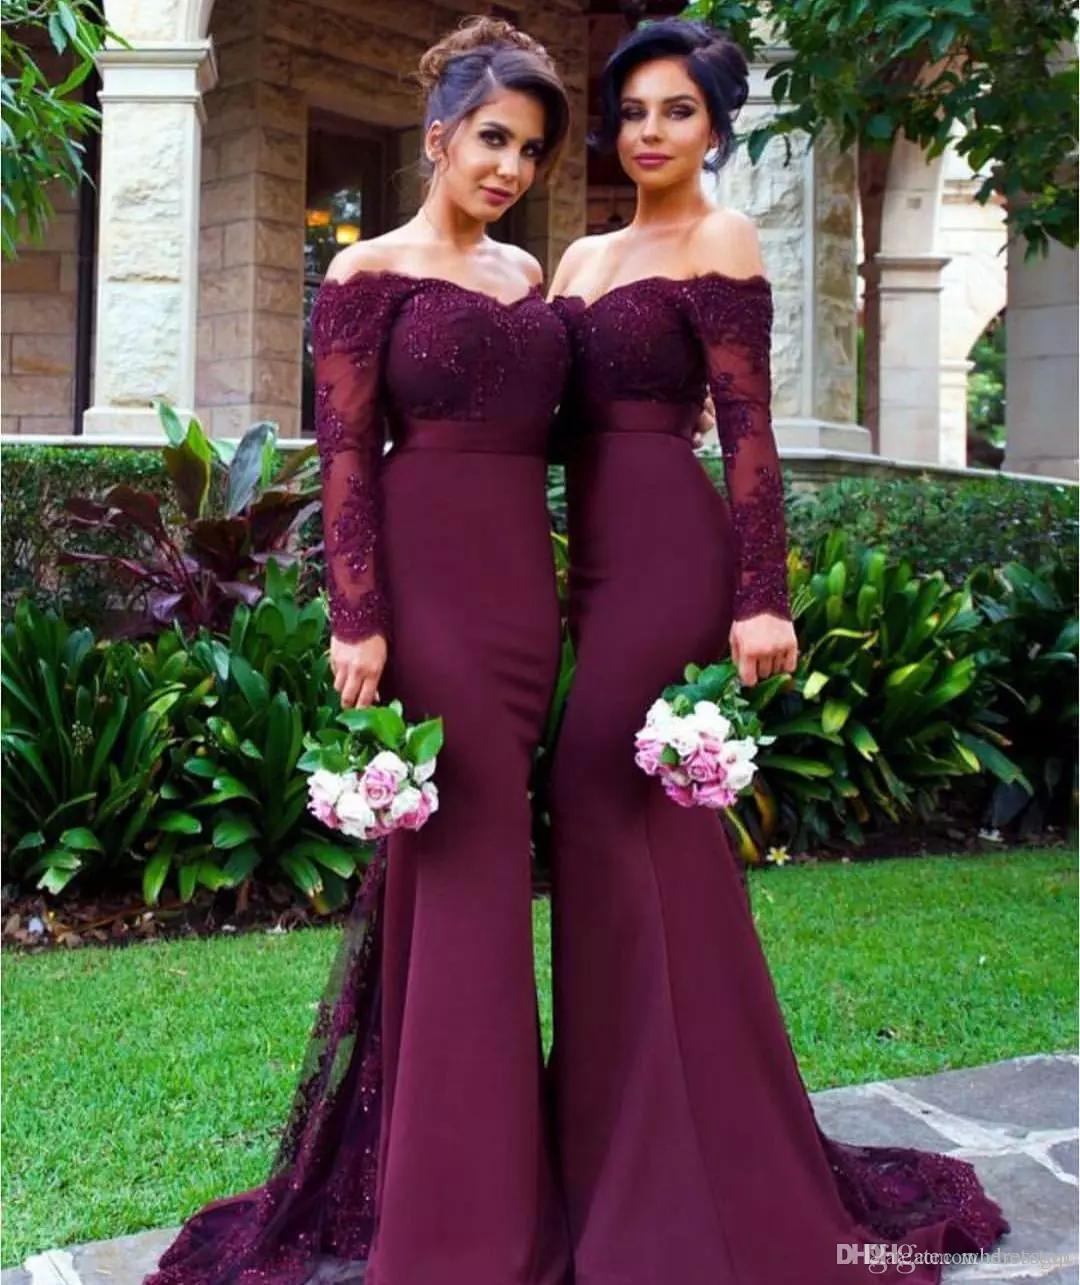 Burgundy off shoulder bridesmaid dresses cheap long beaded burgundy off shoulder bridesmaid dresses cheap long beaded appliqued wedding guest dress floor length sleeves mermaid formal gowns charcoal grey bridesmaid ombrellifo Gallery